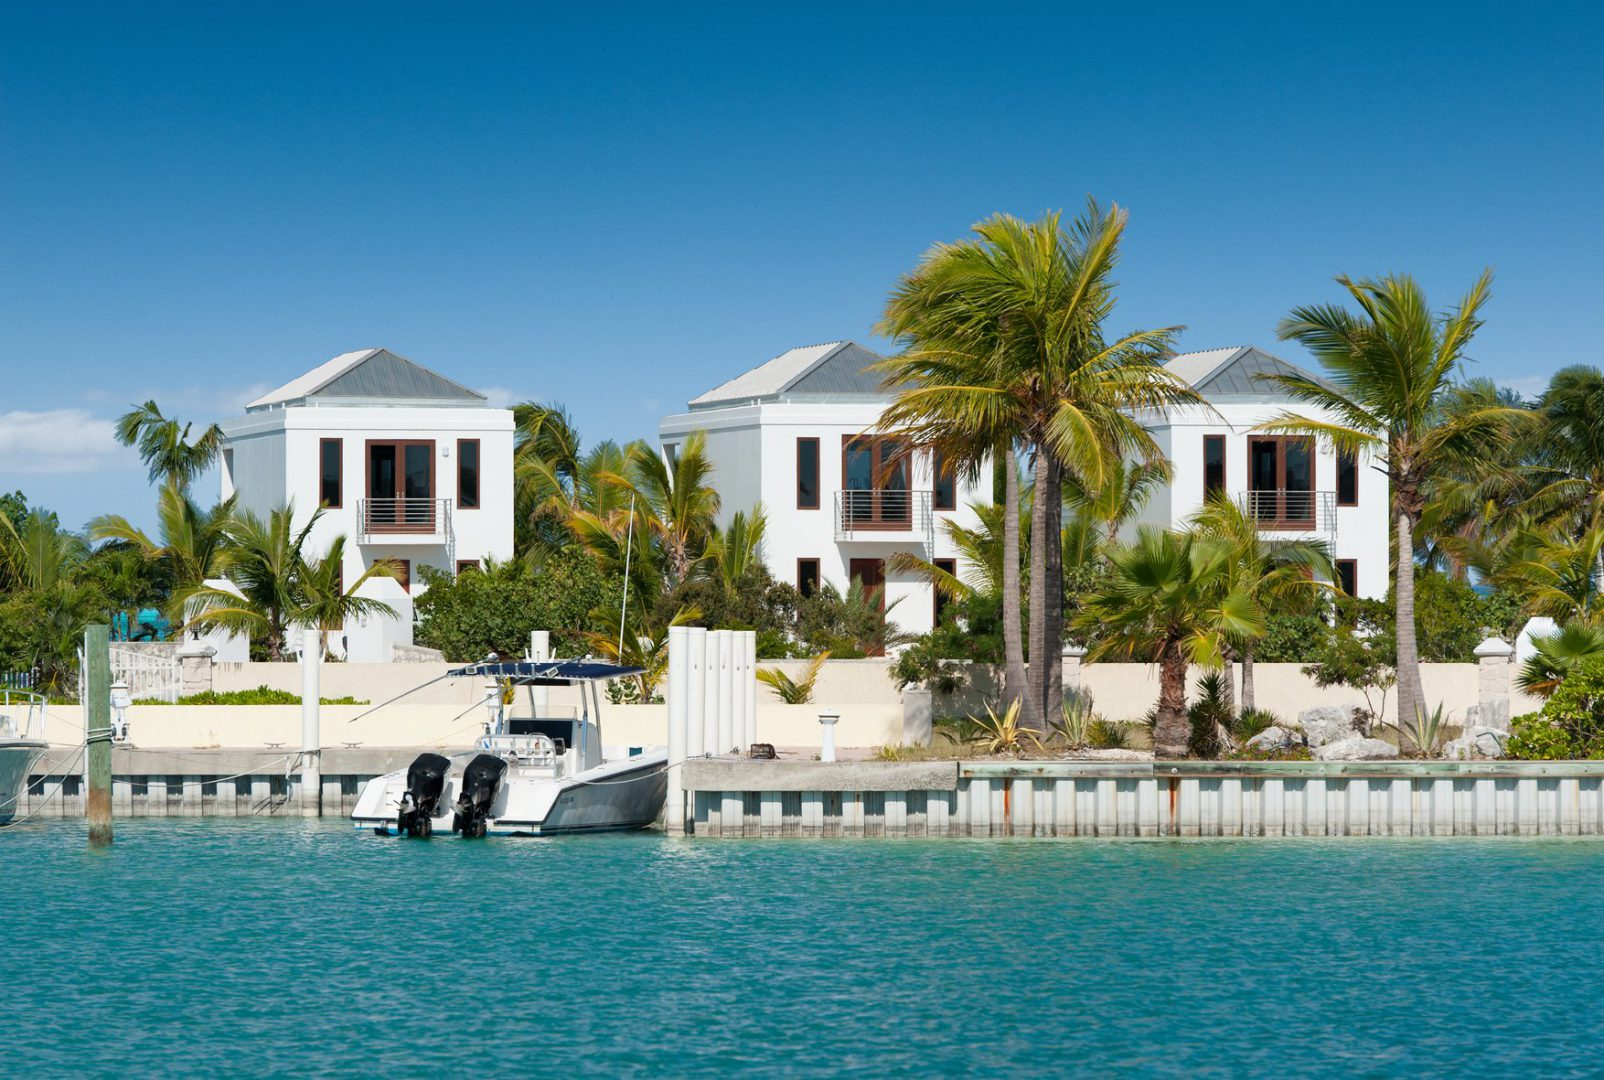 Ocean Edge Villa in Providenciales, Turks and Caicos